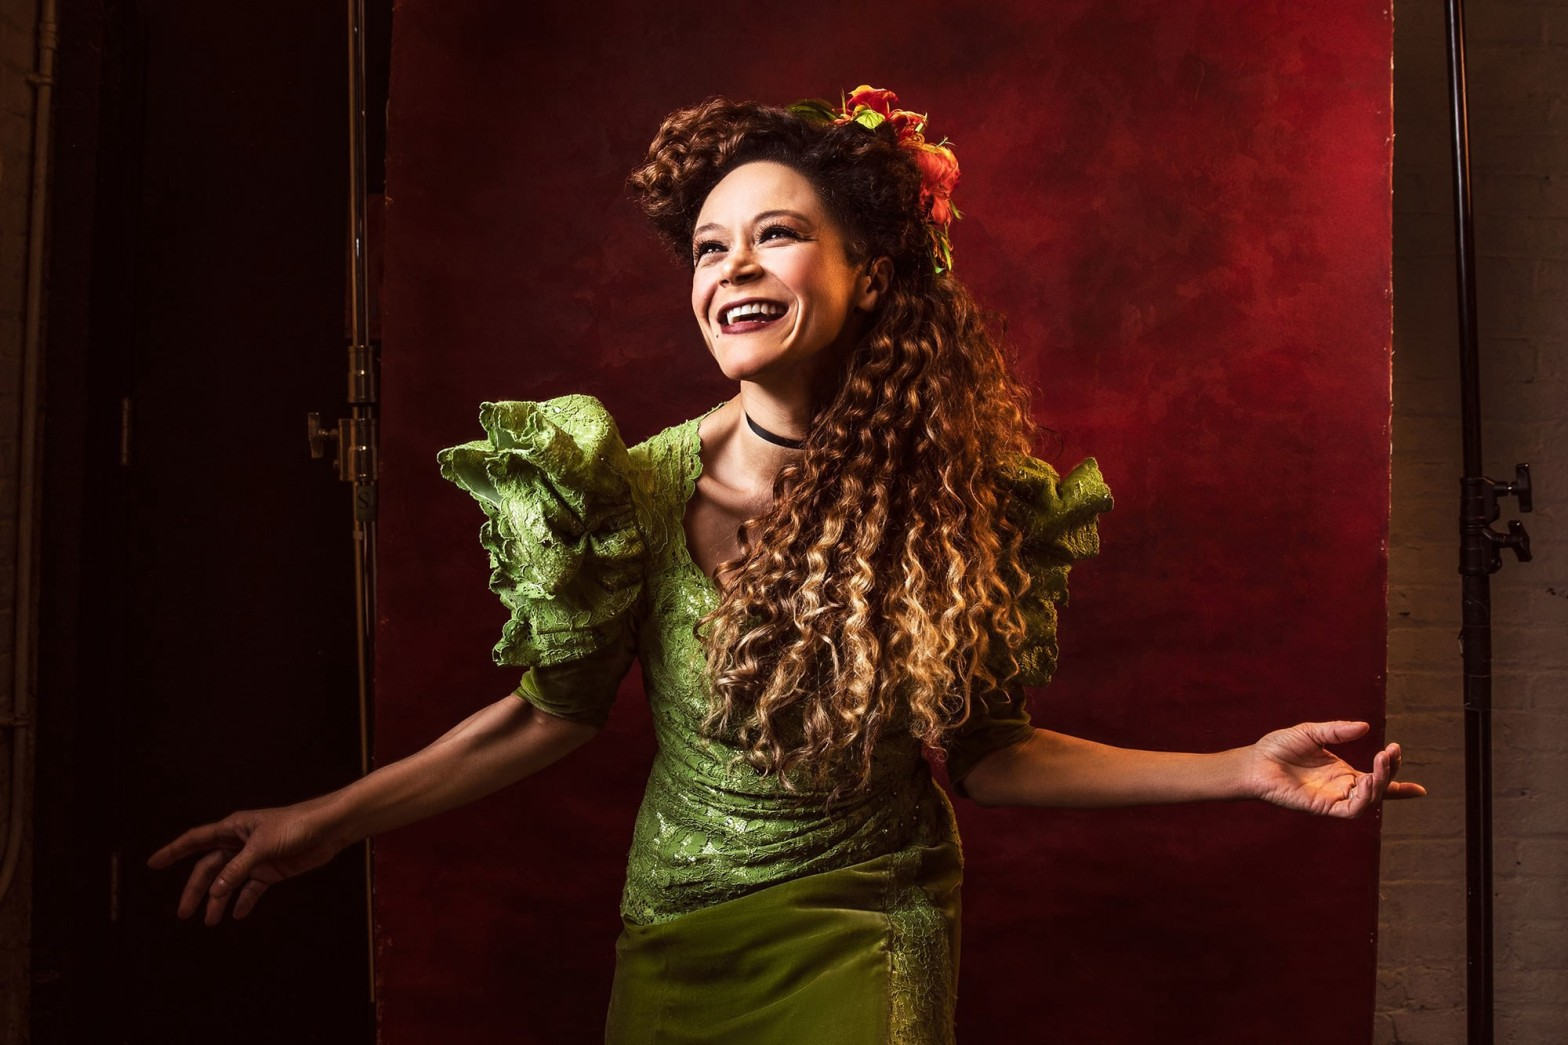 Amber Gray as Persephone in Hadestown (2019)